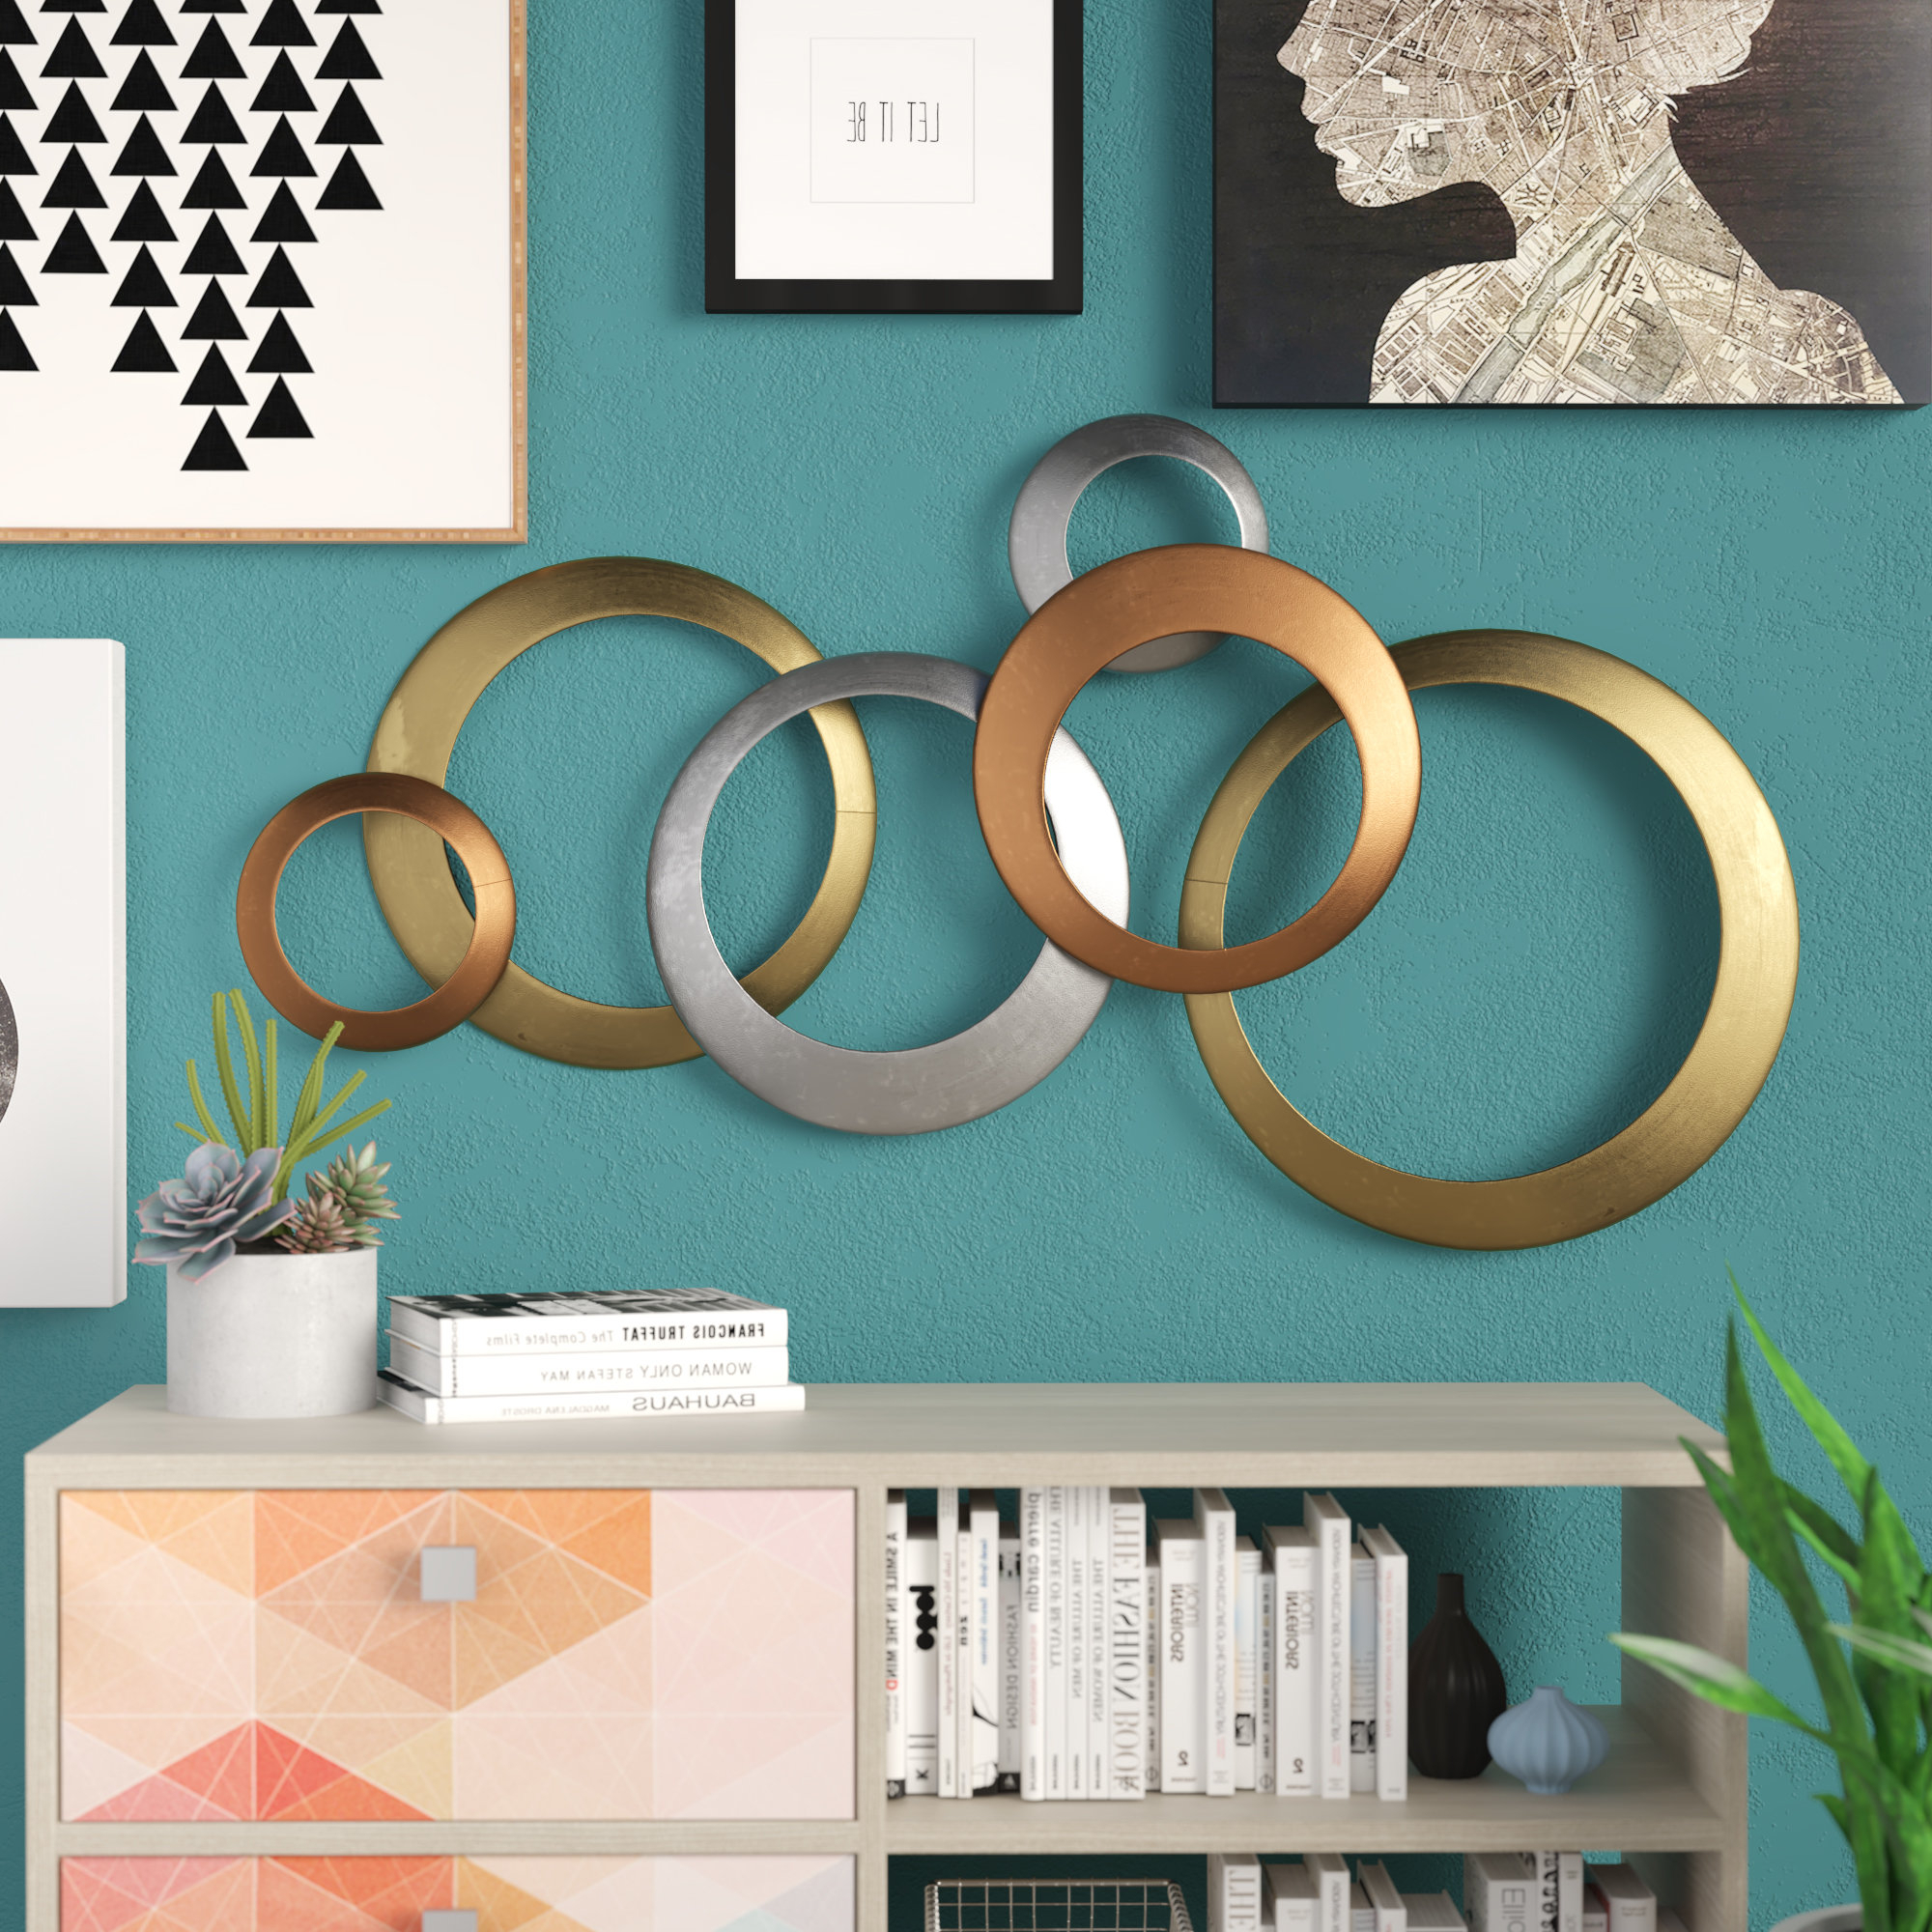 Rings Wall Decor Within 2019 Orren Ellis Multi Rings Wall Décor & Reviews (Gallery 10 of 20)